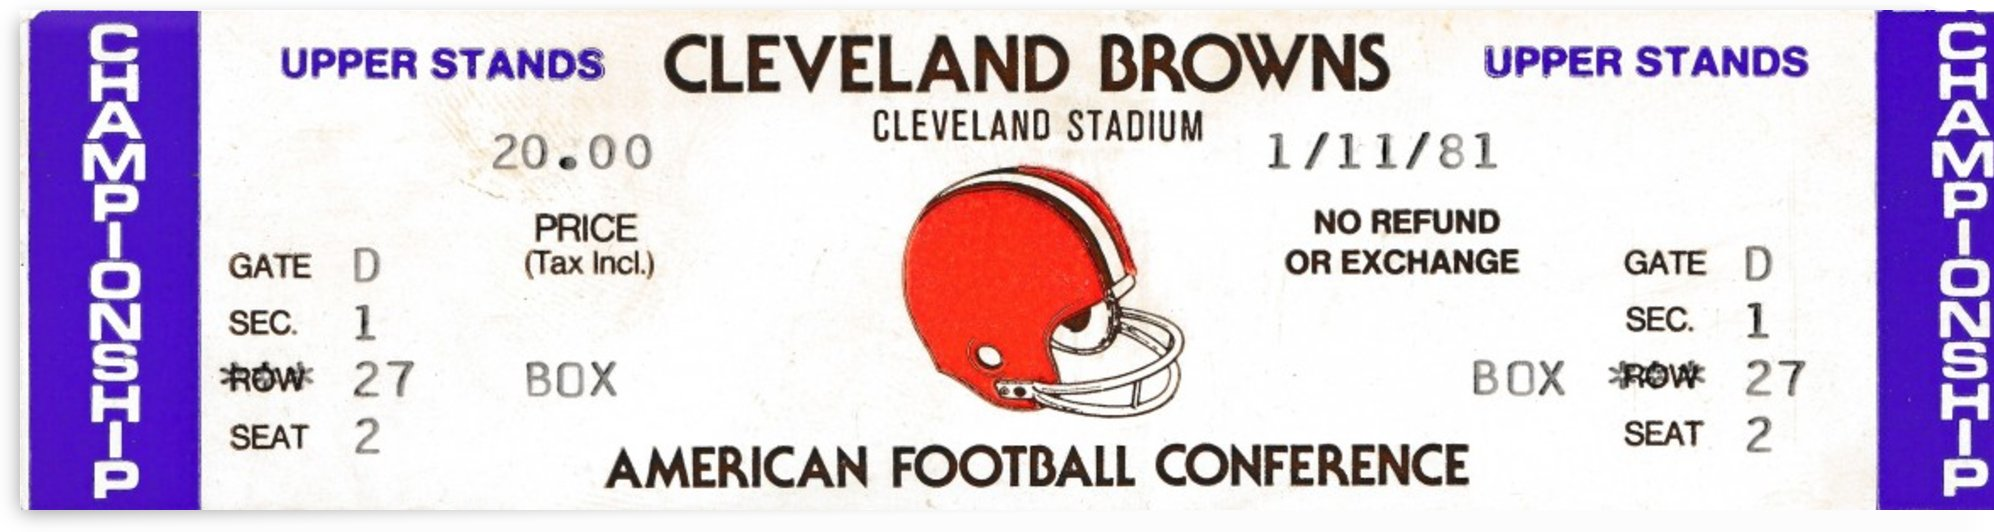 1981 cleveland browns phantom ticket by Row One Brand